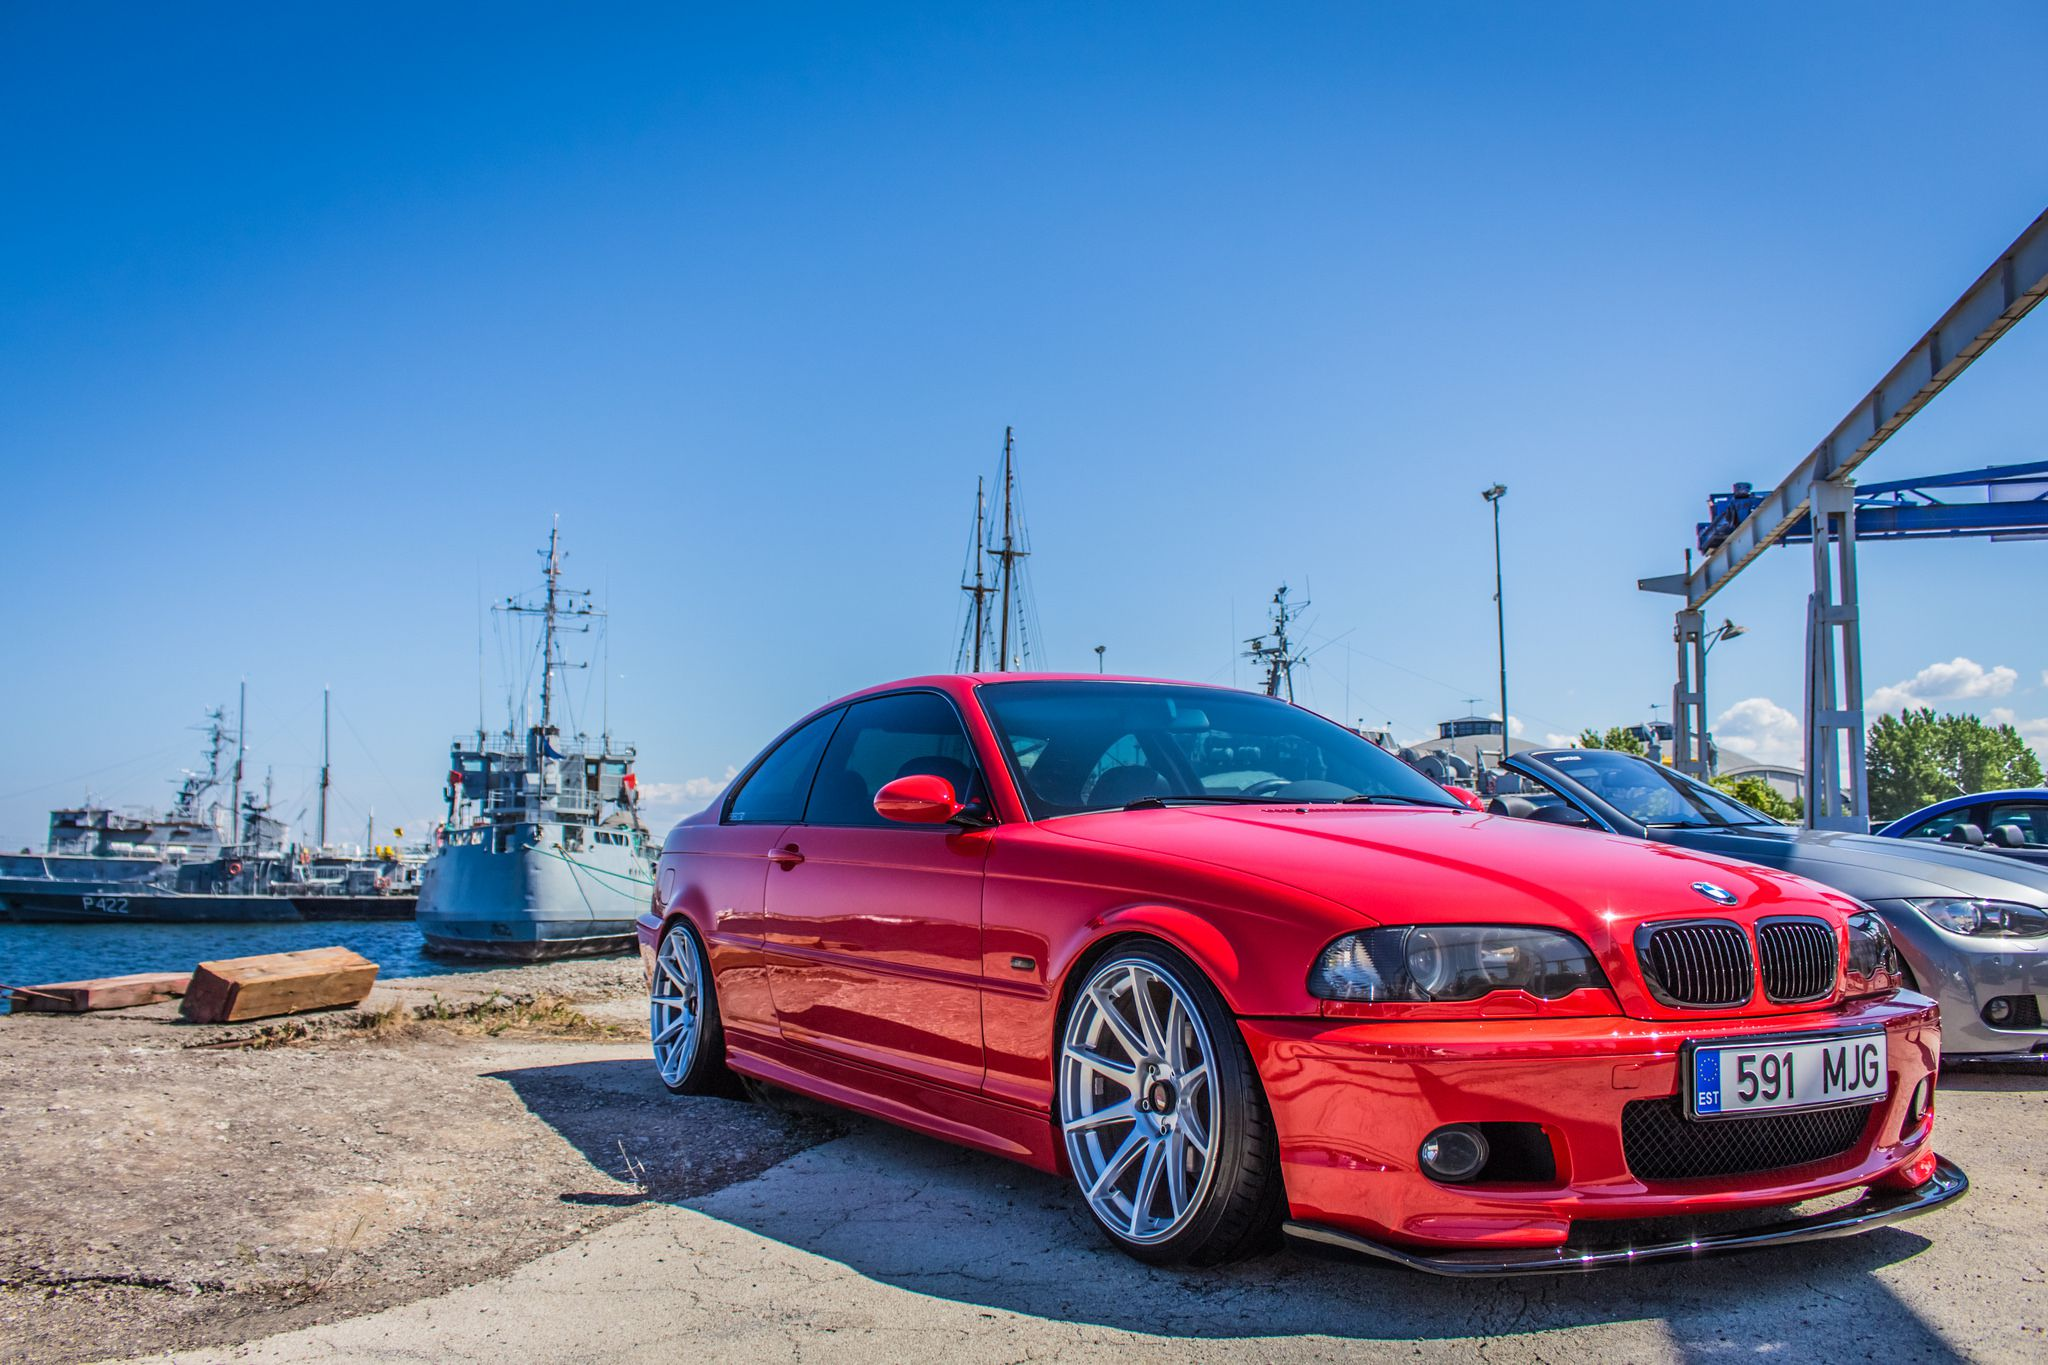 Red BMW M3 E46 by Aleksei Volkov